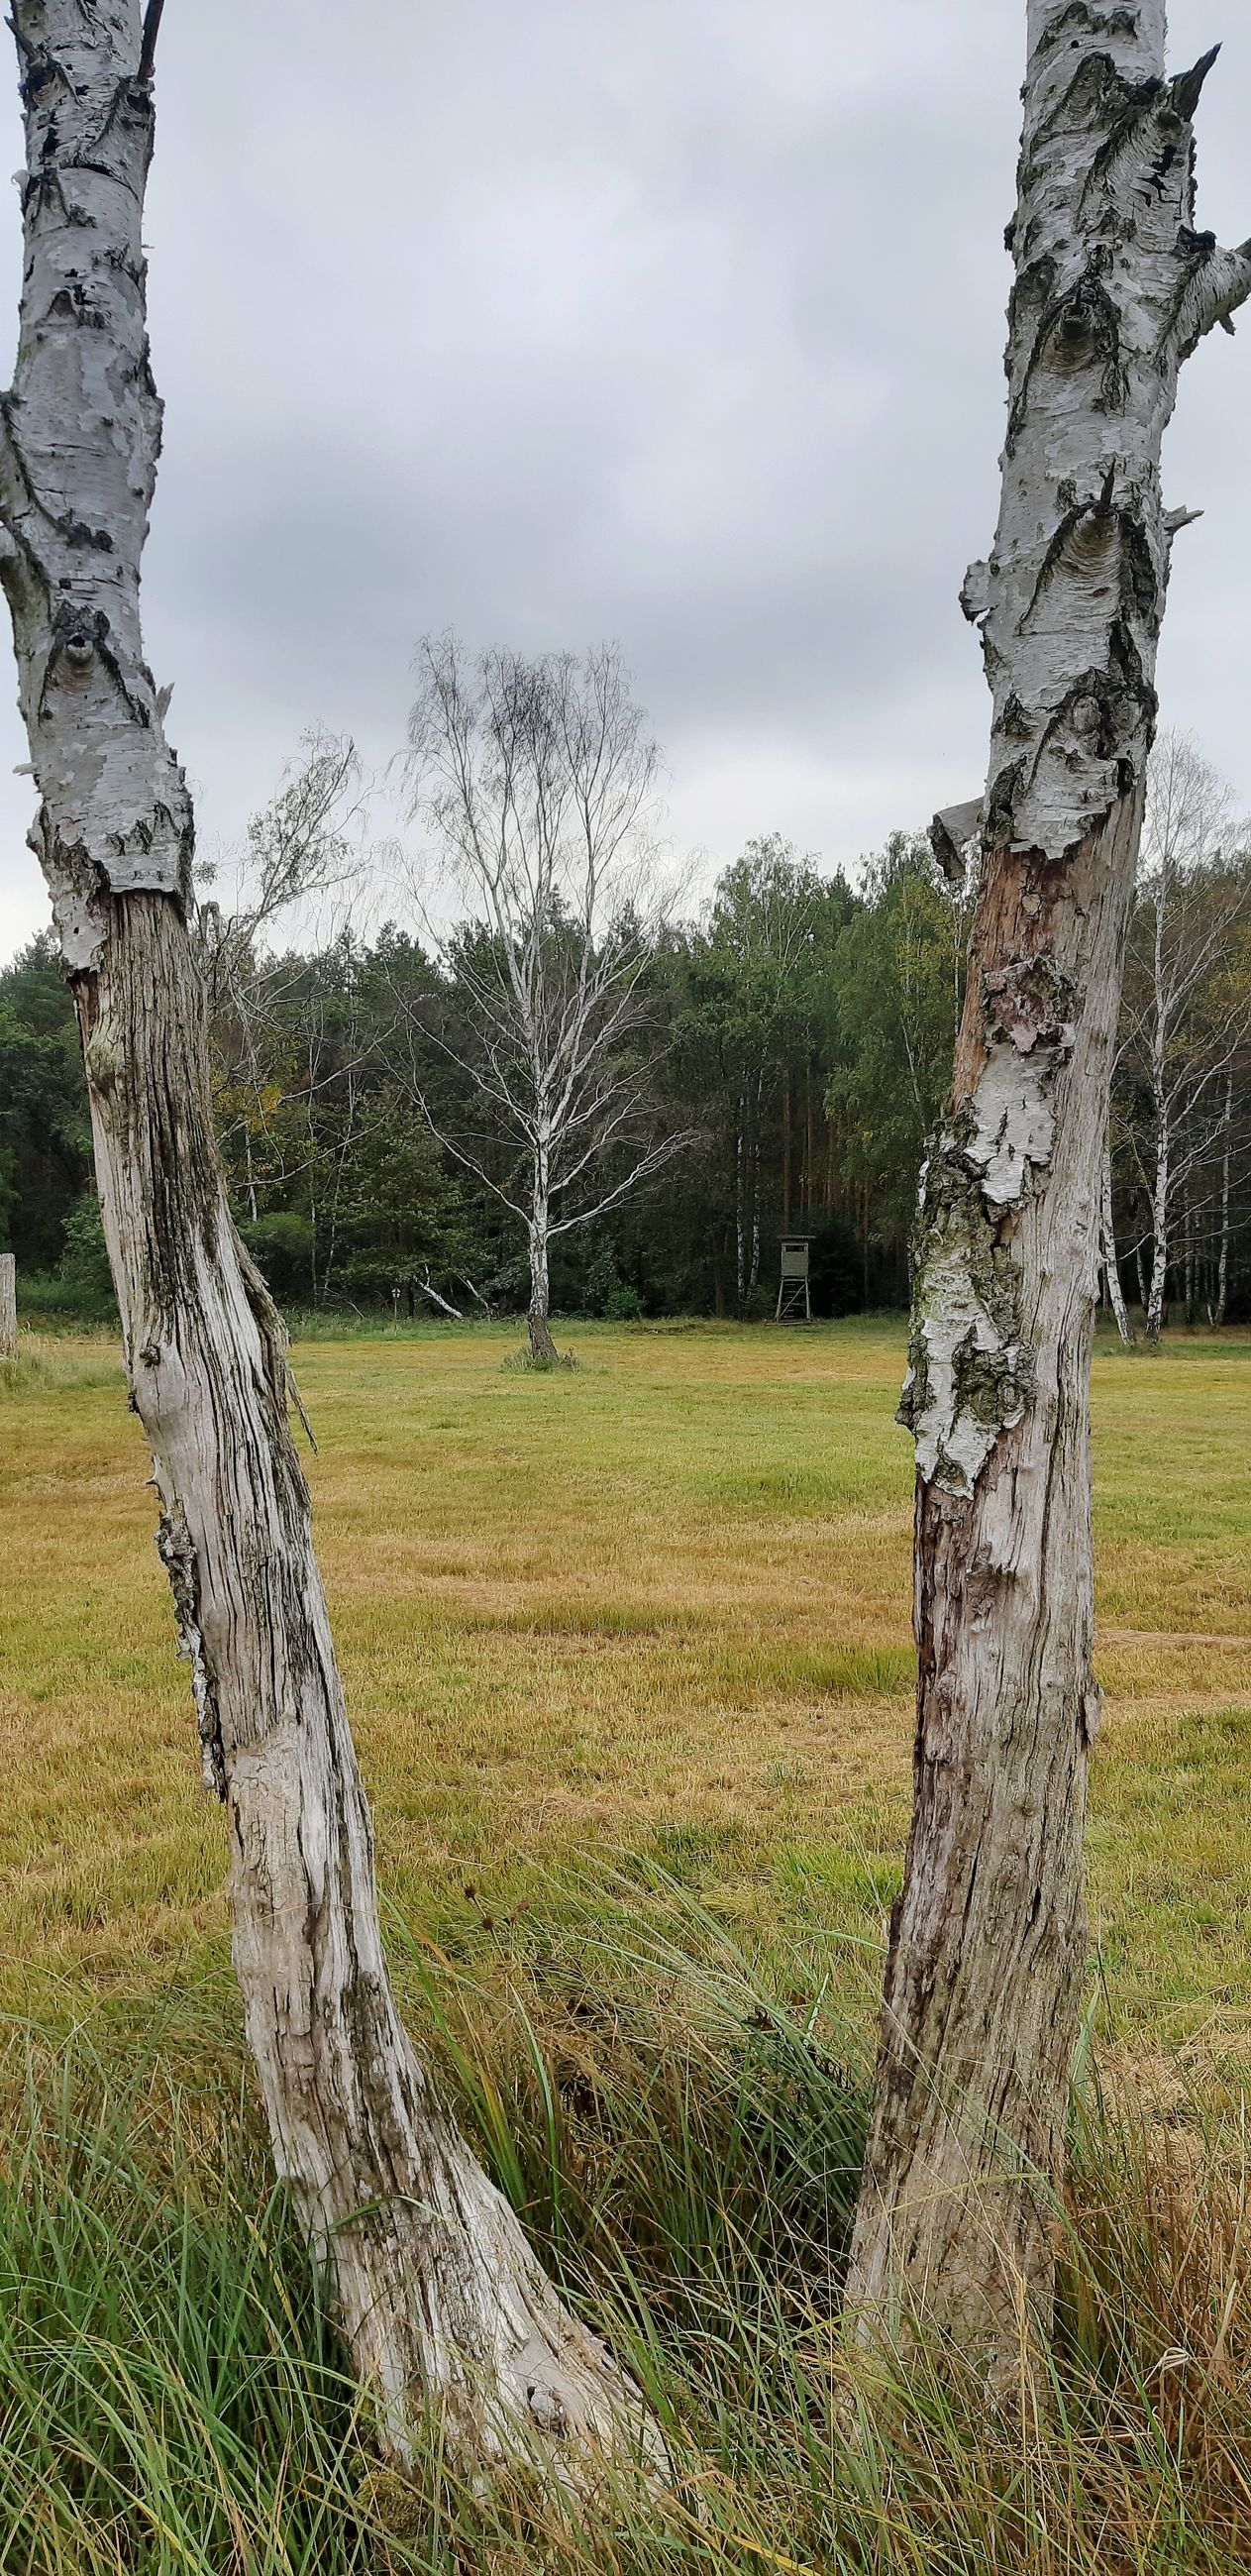 tree, plant, land, sky, field, cloud - sky, grass, landscape, tree trunk, trunk, nature, day, environment, no people, tranquility, growth, tranquil scene, scenics - nature, wood - material, beauty in nature, outdoors, dead plant, bark